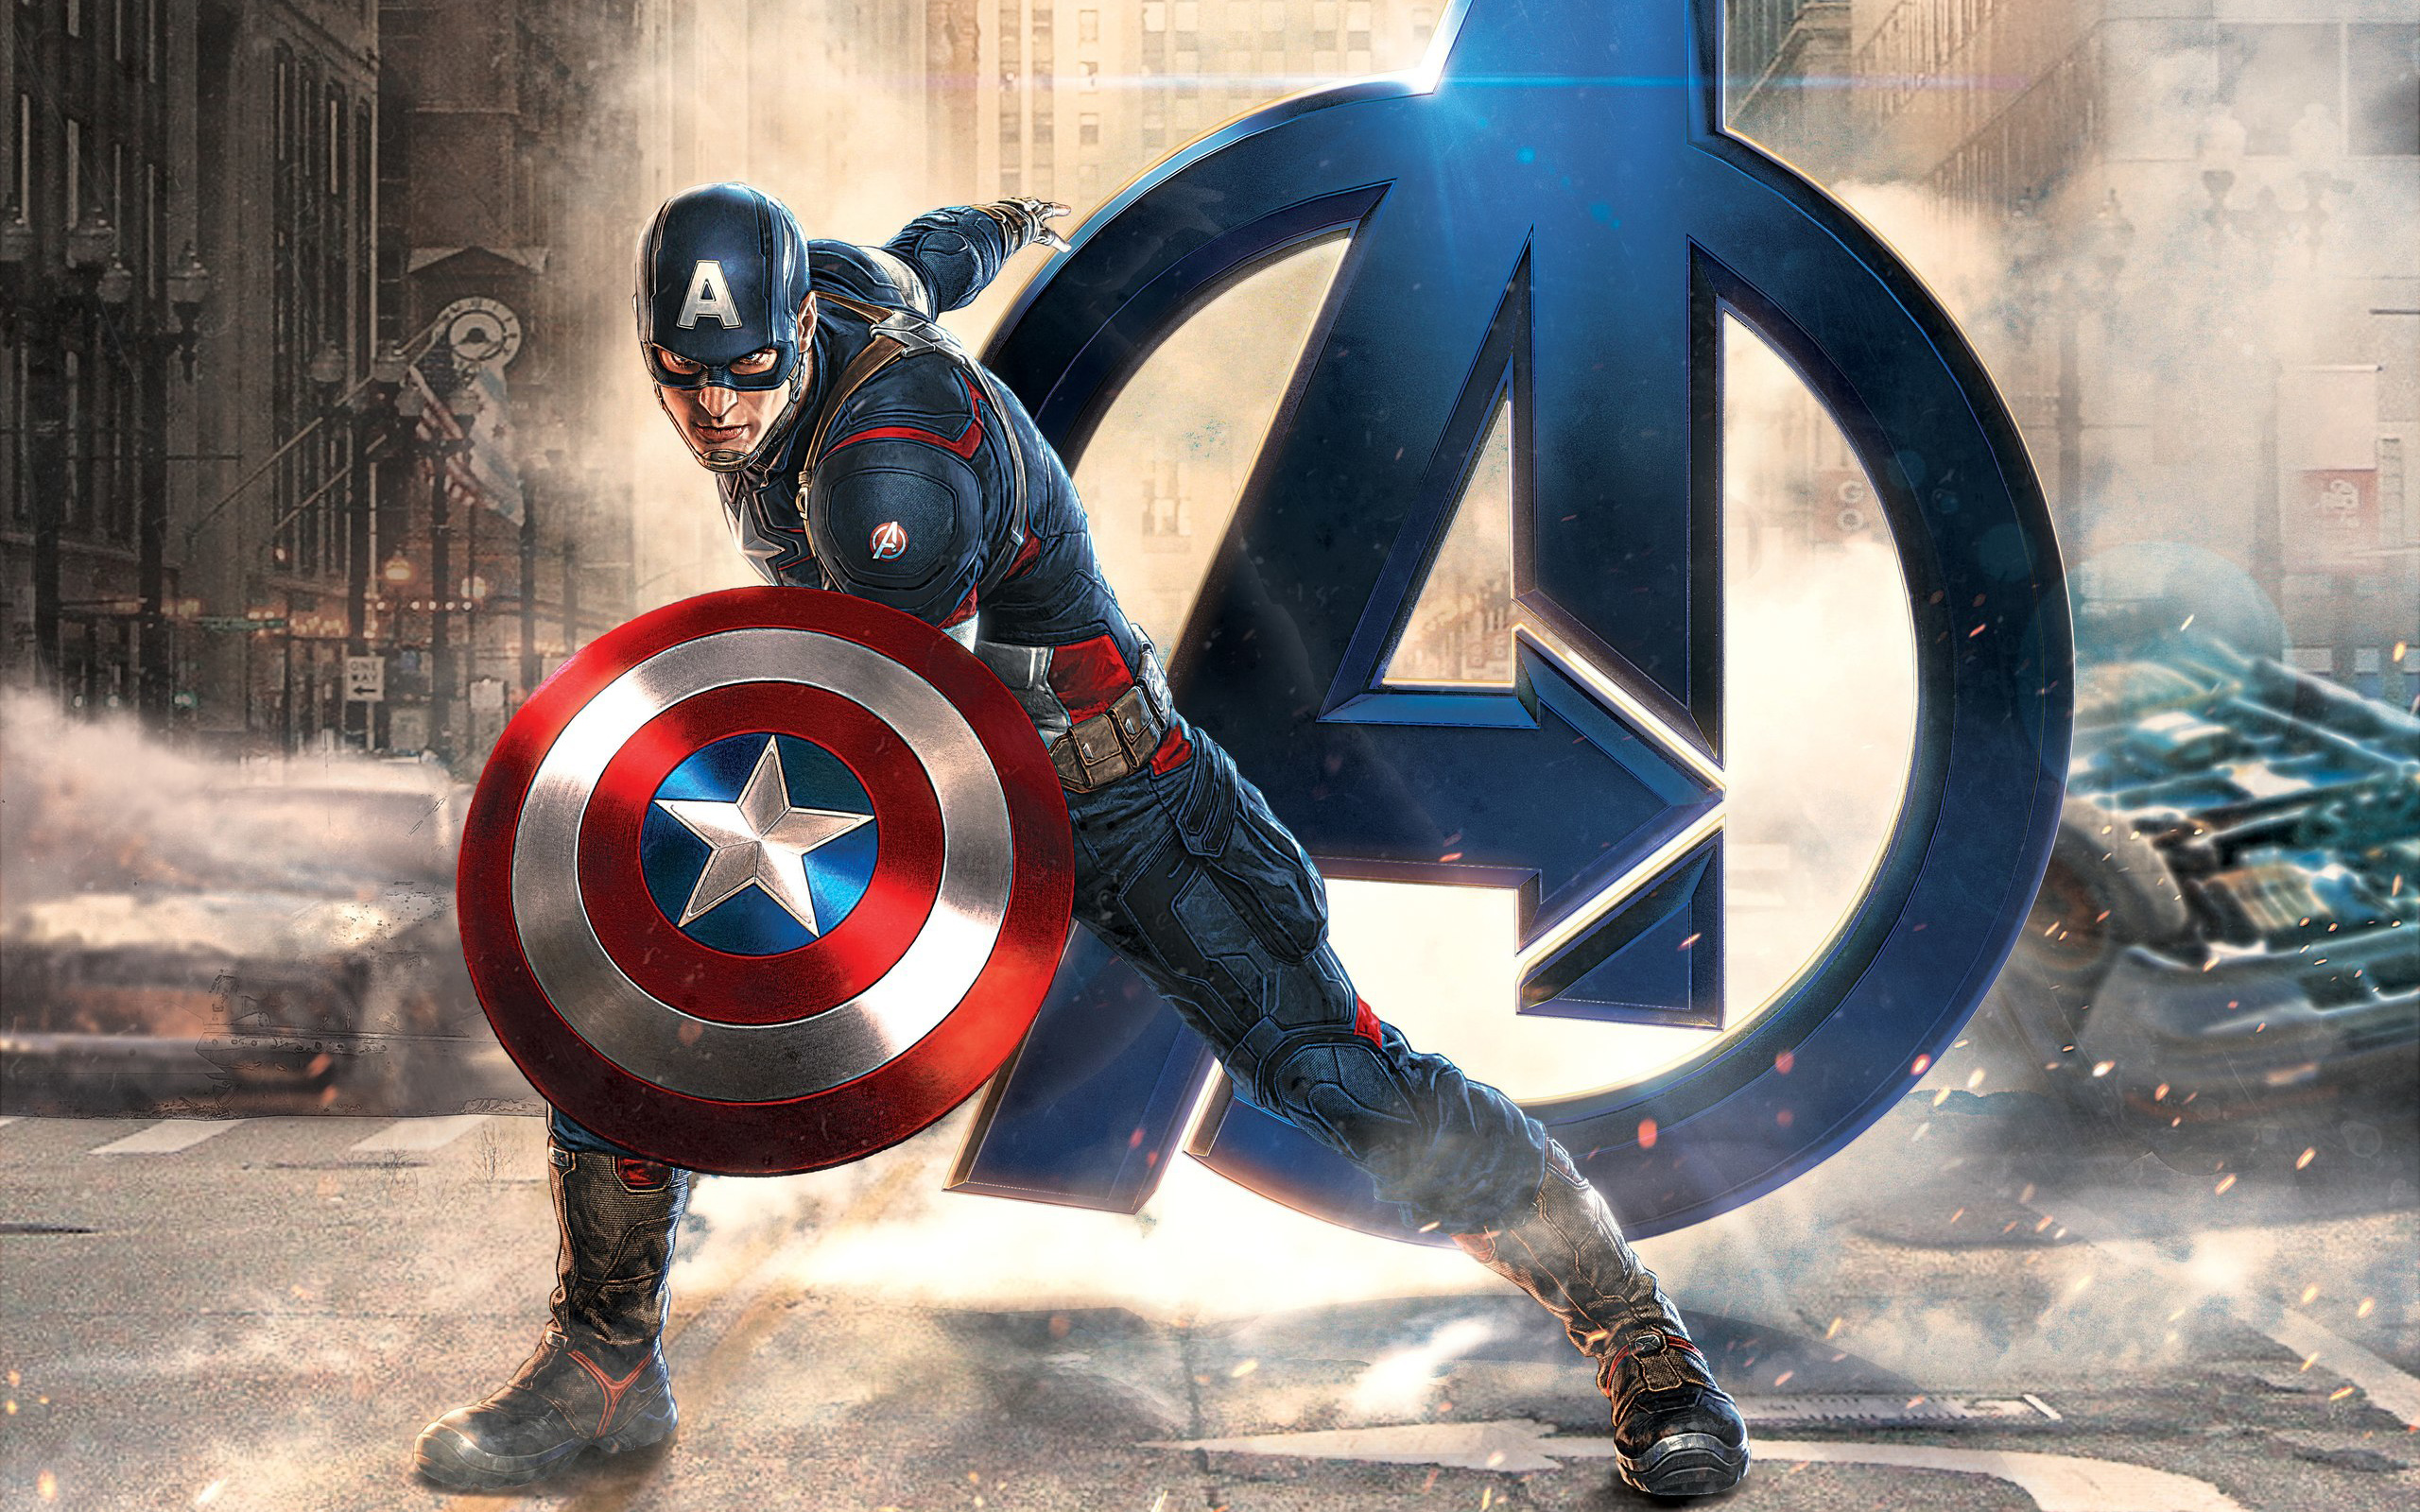 Cool Wallpaper Captain America Baby - captain_america_avengers-widescreen_wallpapers  Photograph_327838.jpg